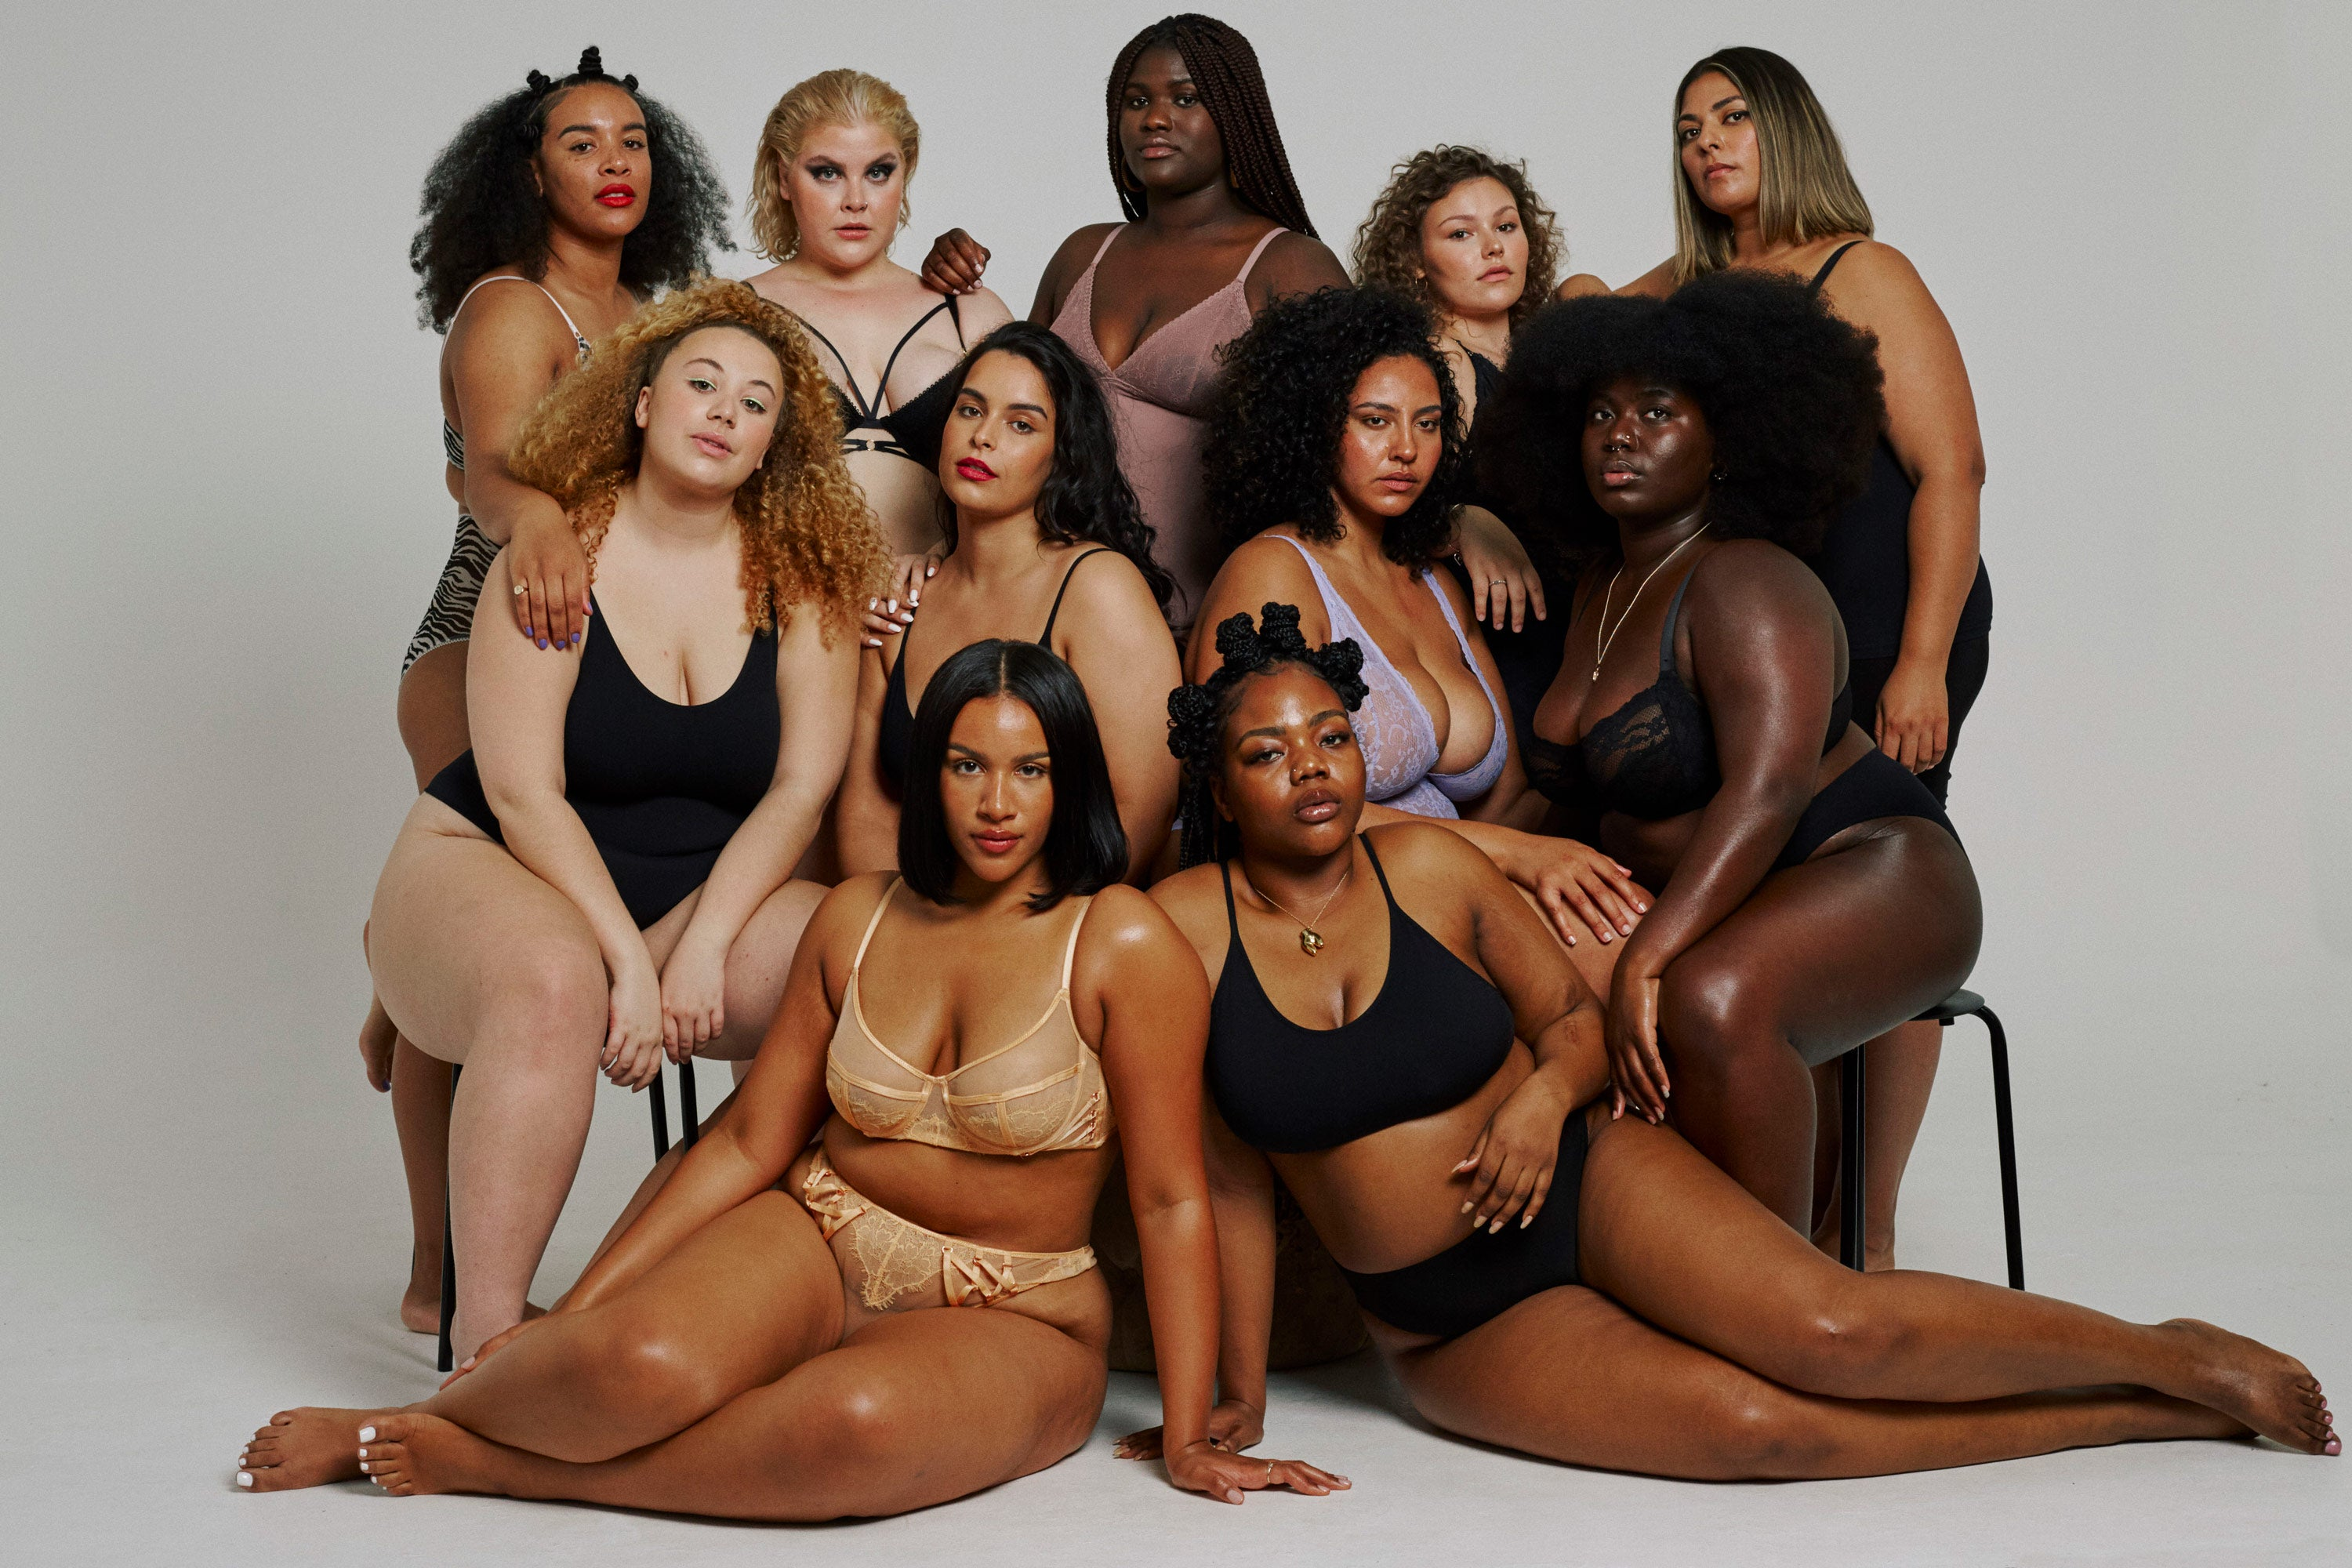 Brother Models Curve Board Celebrates Plus-Size Beauty